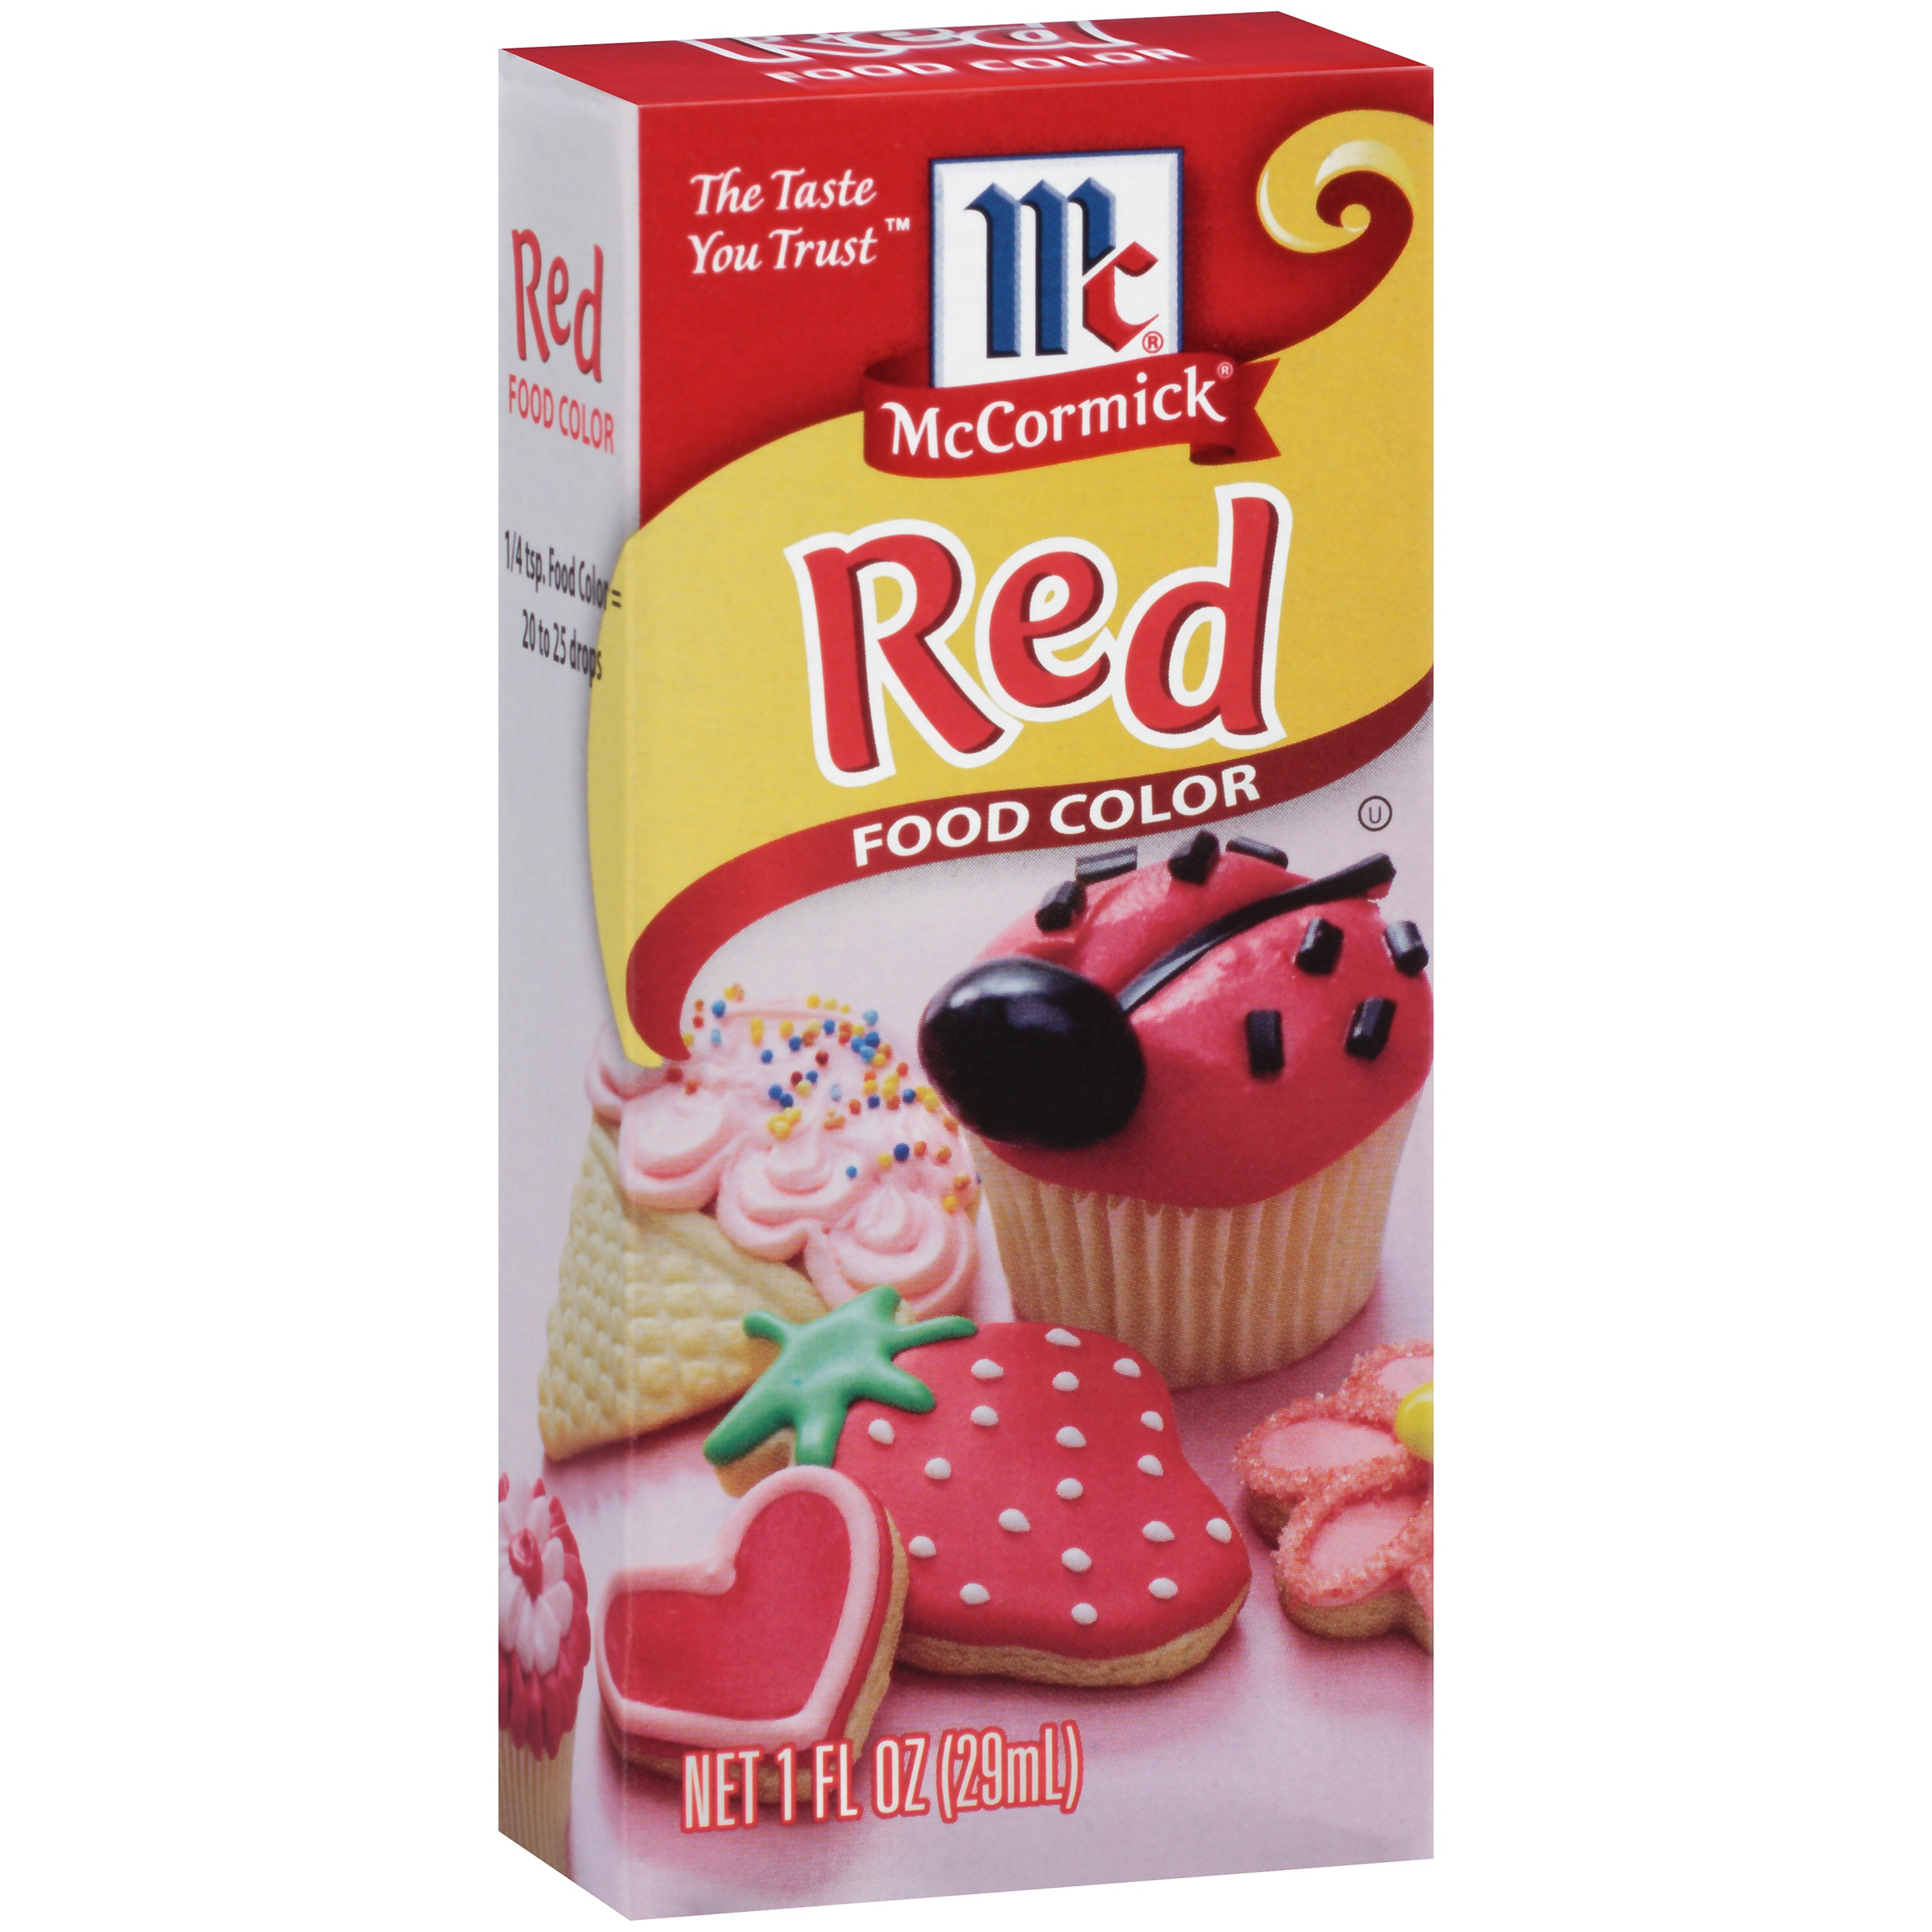 McCormick Red Food Coloring